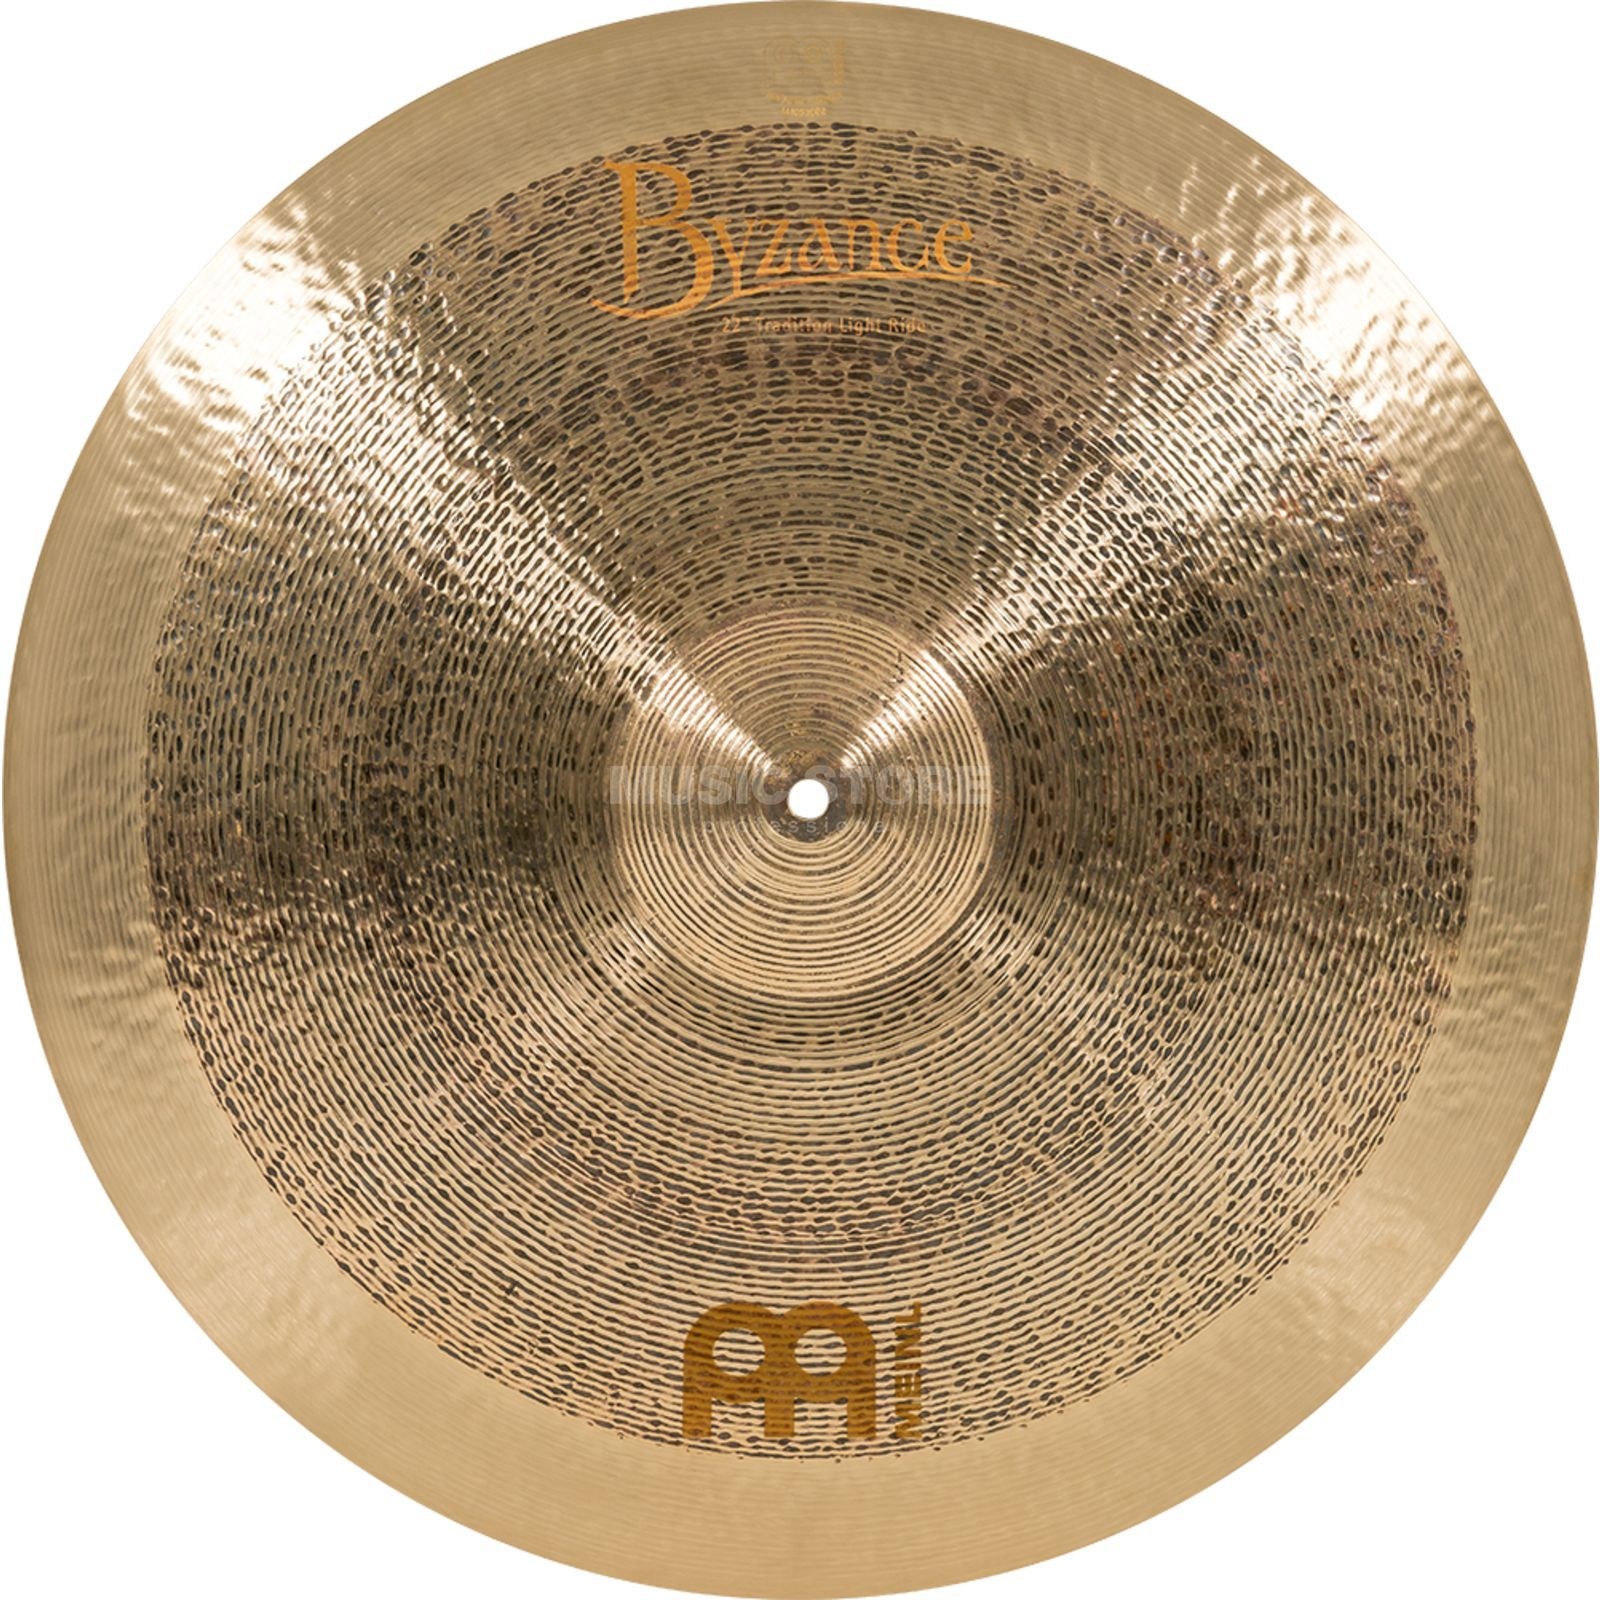 "Meinl Byzance Tradition Ride 22"", B22TRLR, Light, Jazz Finish Produktbillede"